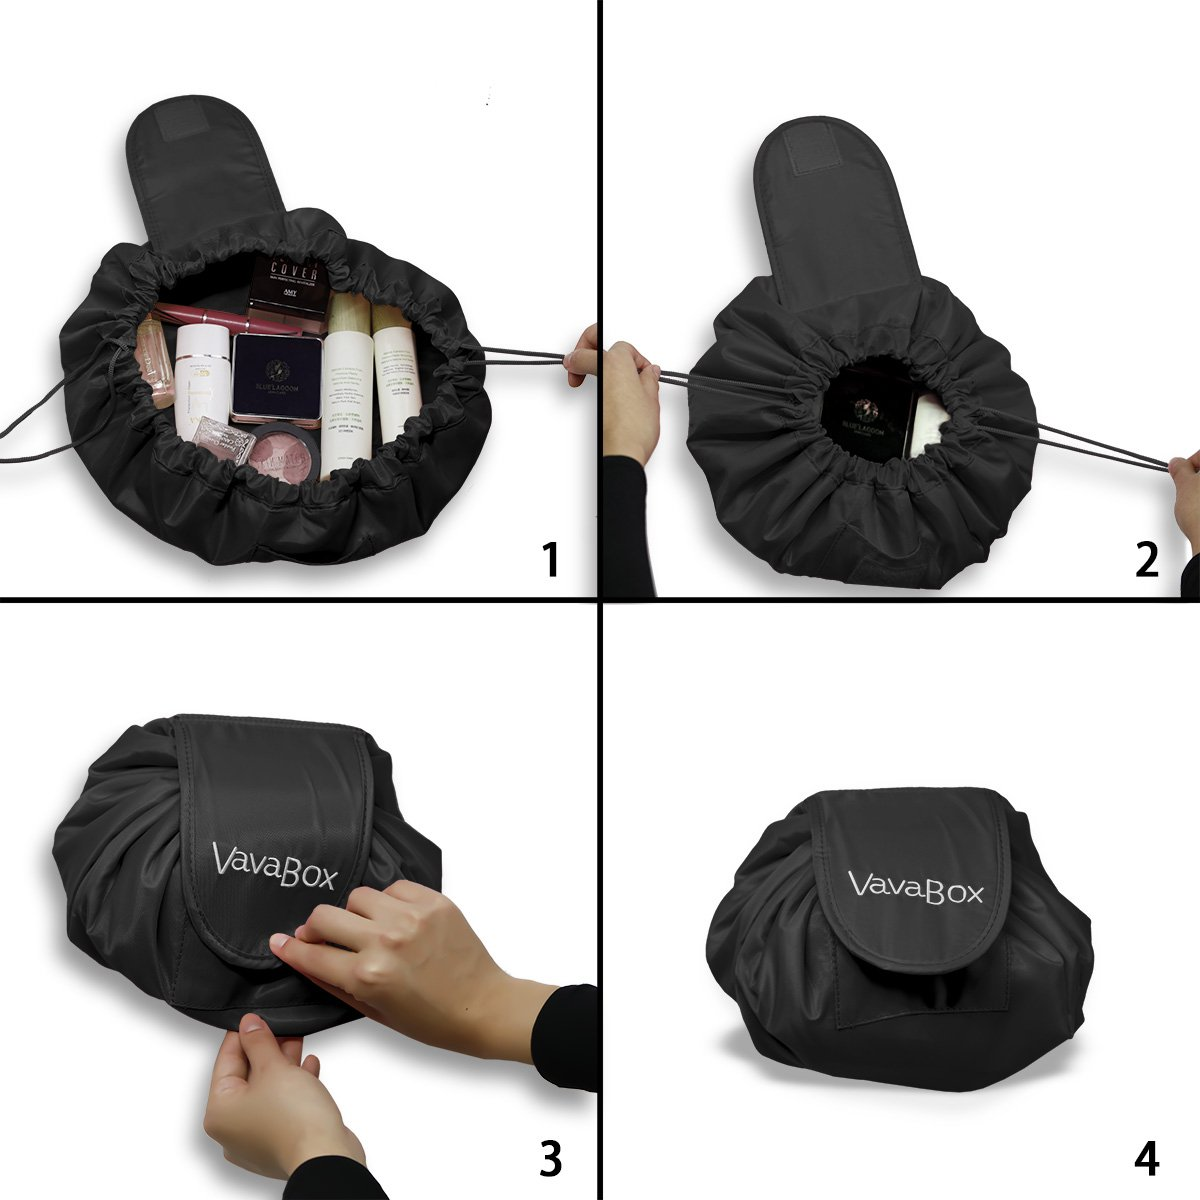 Lazy Drawstring Make up Bag Portable Large Travel Cosmetic Bag Pouch Travel Makeup Pouch Storage Organiser For Women Girl (Black)